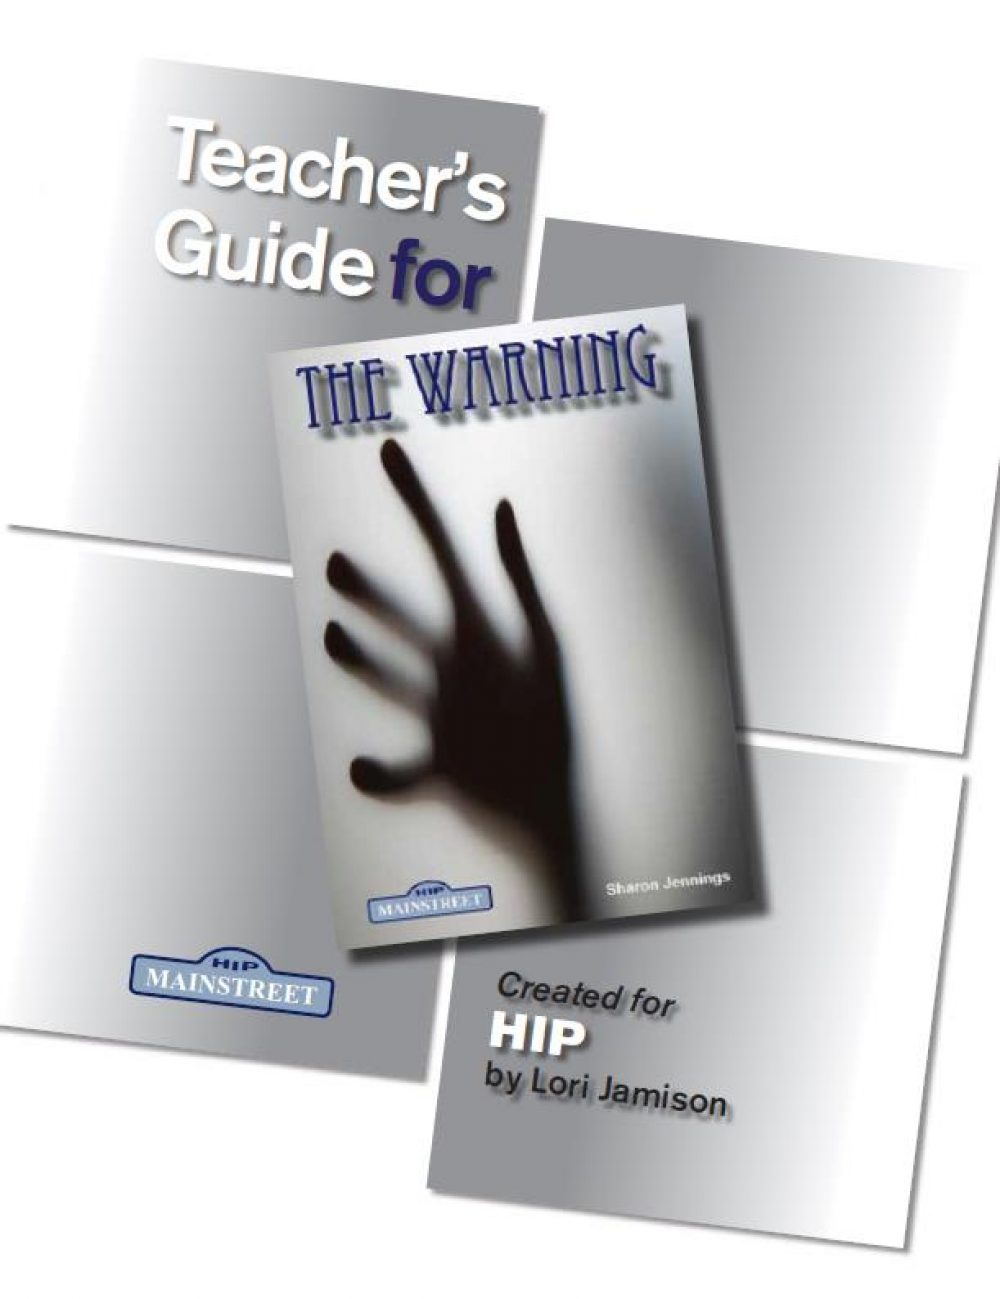 The Warning - Teacher's Guide